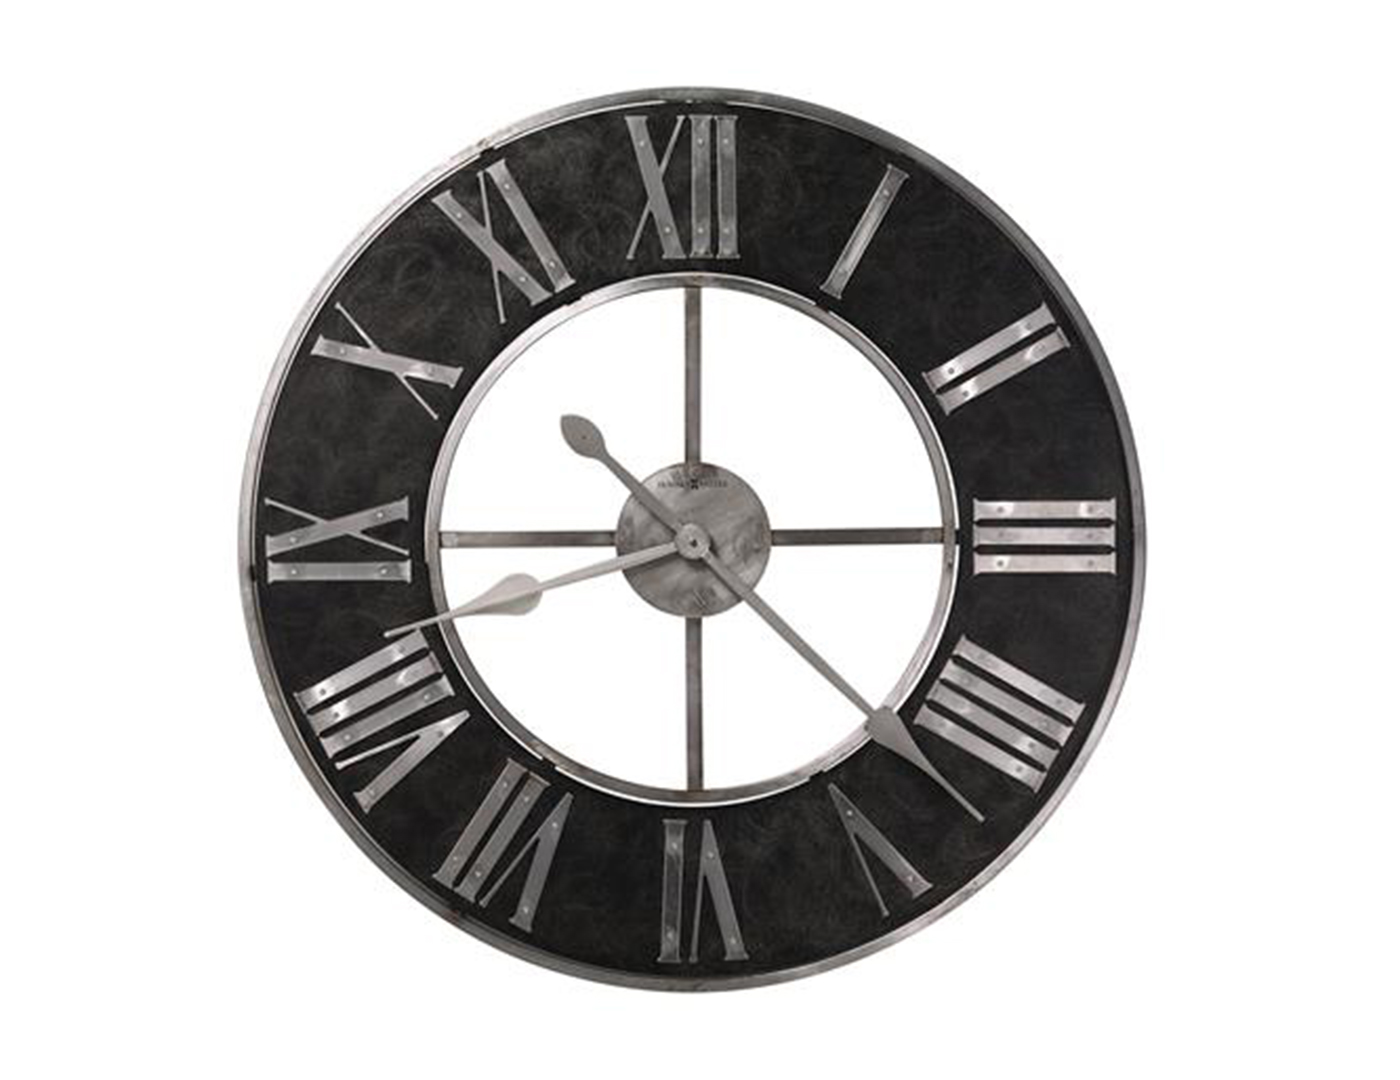 Howard Miller Charcoal/Silver Wall Clock 32""